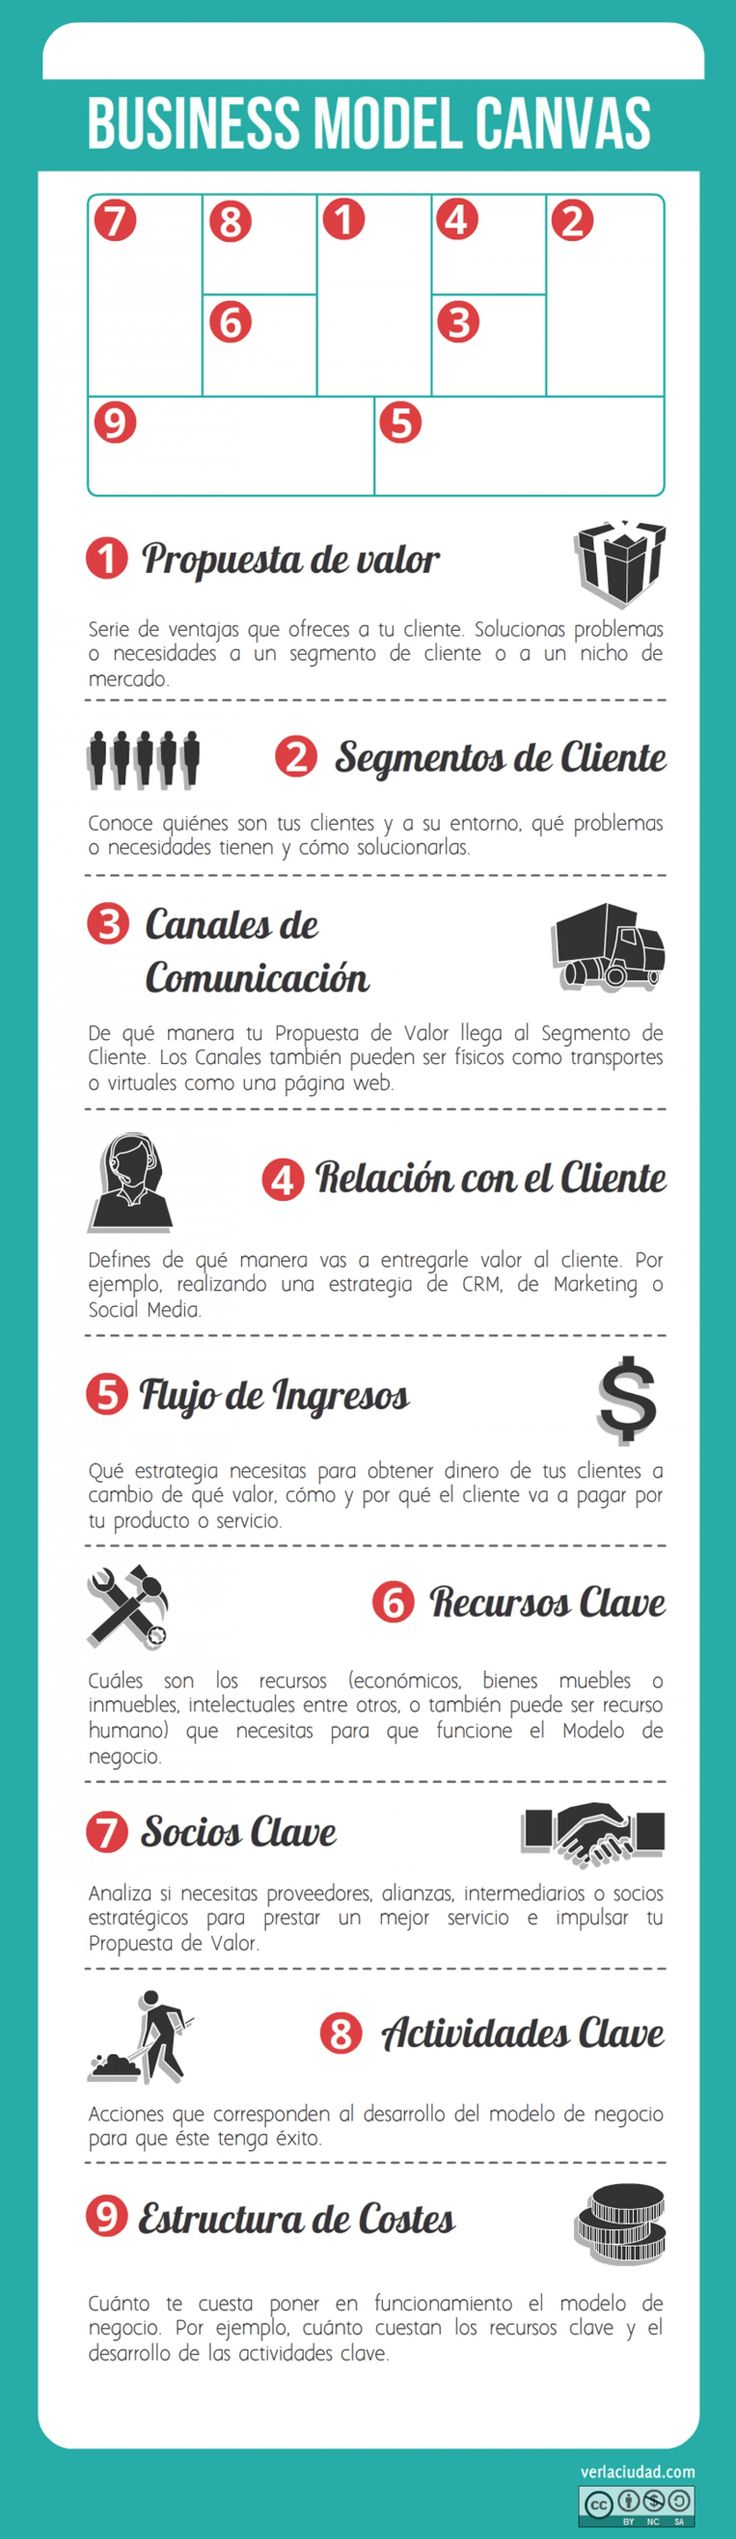 infografías business model canvas - Buscar con Google